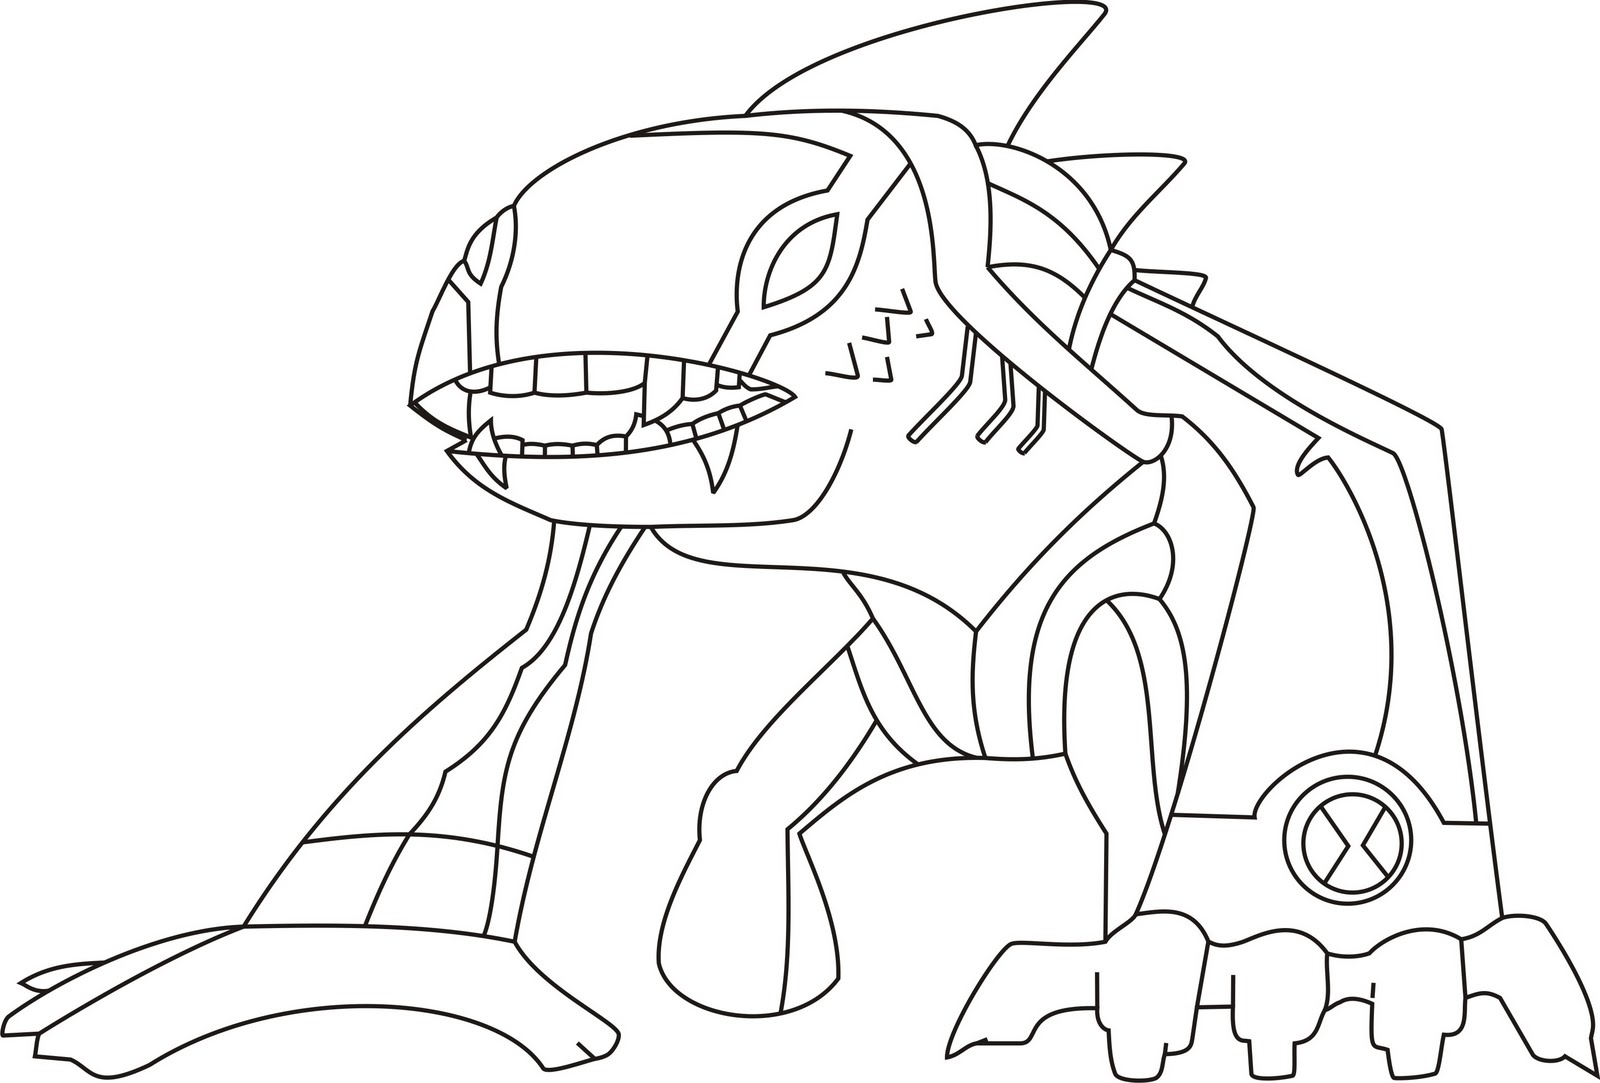 ben 10 coloring pages - photo#2